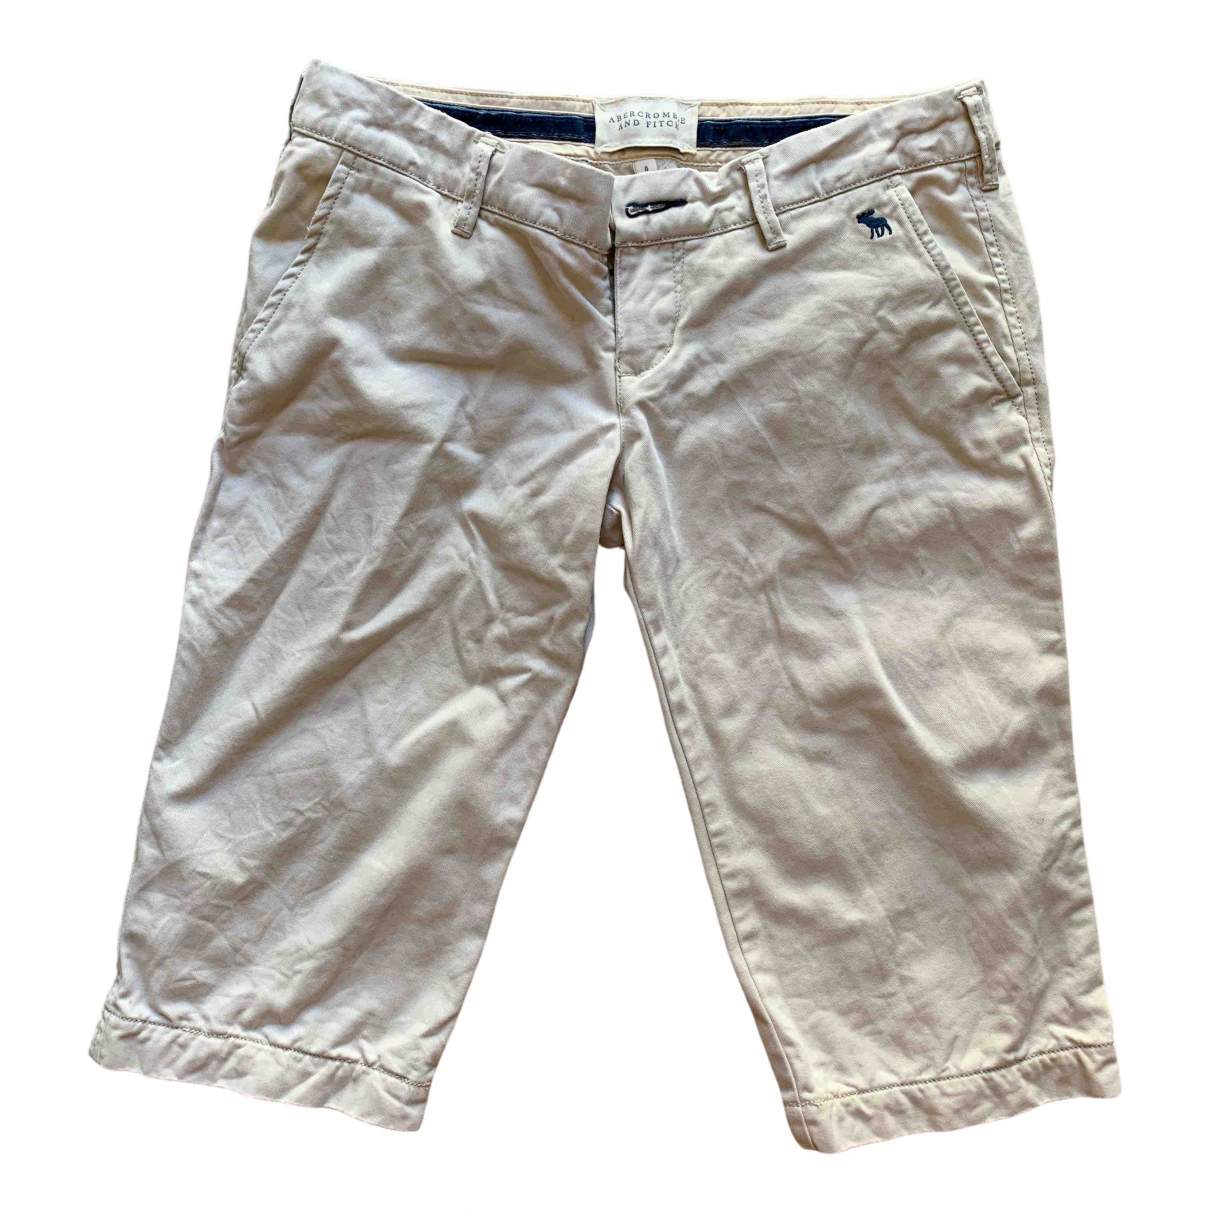 Abercrombie & Fitch \N Beige Cotton Shorts for Women S International